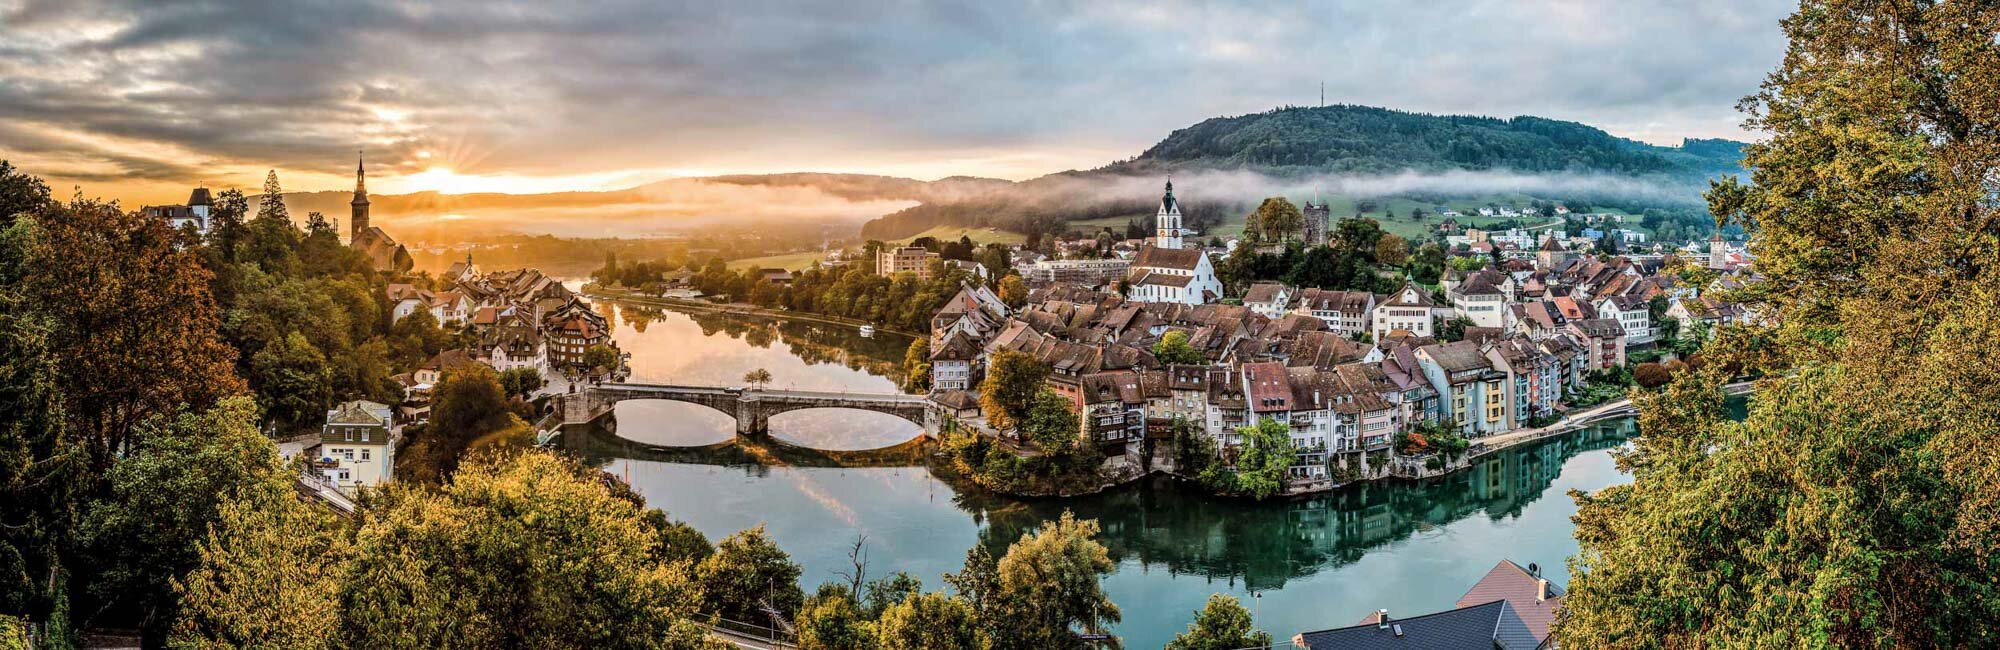 The main city of the district Laufenburg is located on the Upper Rhine on the border with Germany (left side), in the northeast of the Fricktal region. Copyright by: Switzerland Tourism